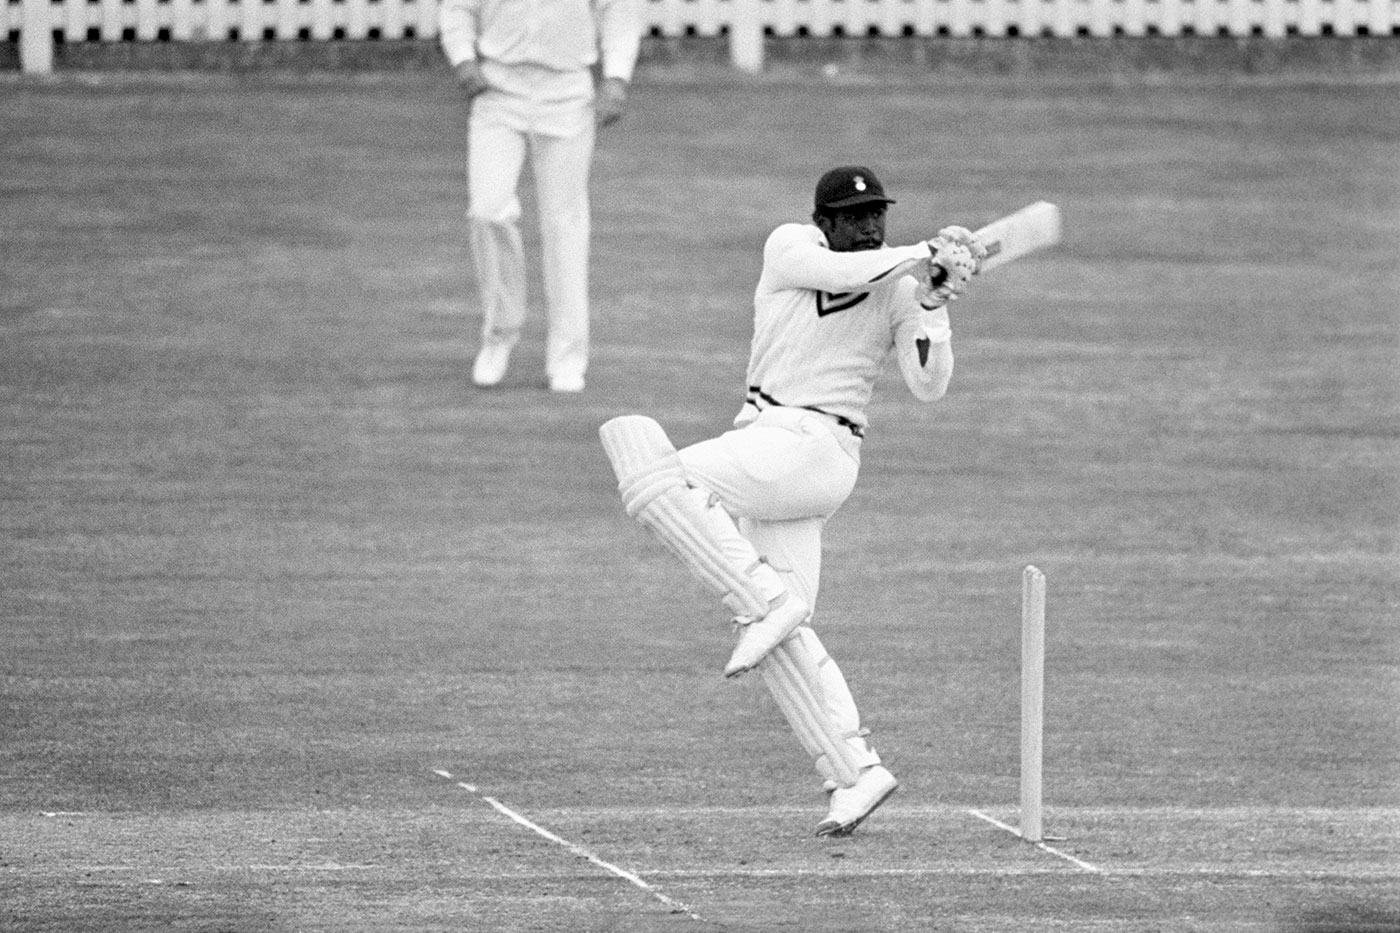 A familiar sight across county grounds in the '80s: Greenidge hooking and pulling with his left knee raised